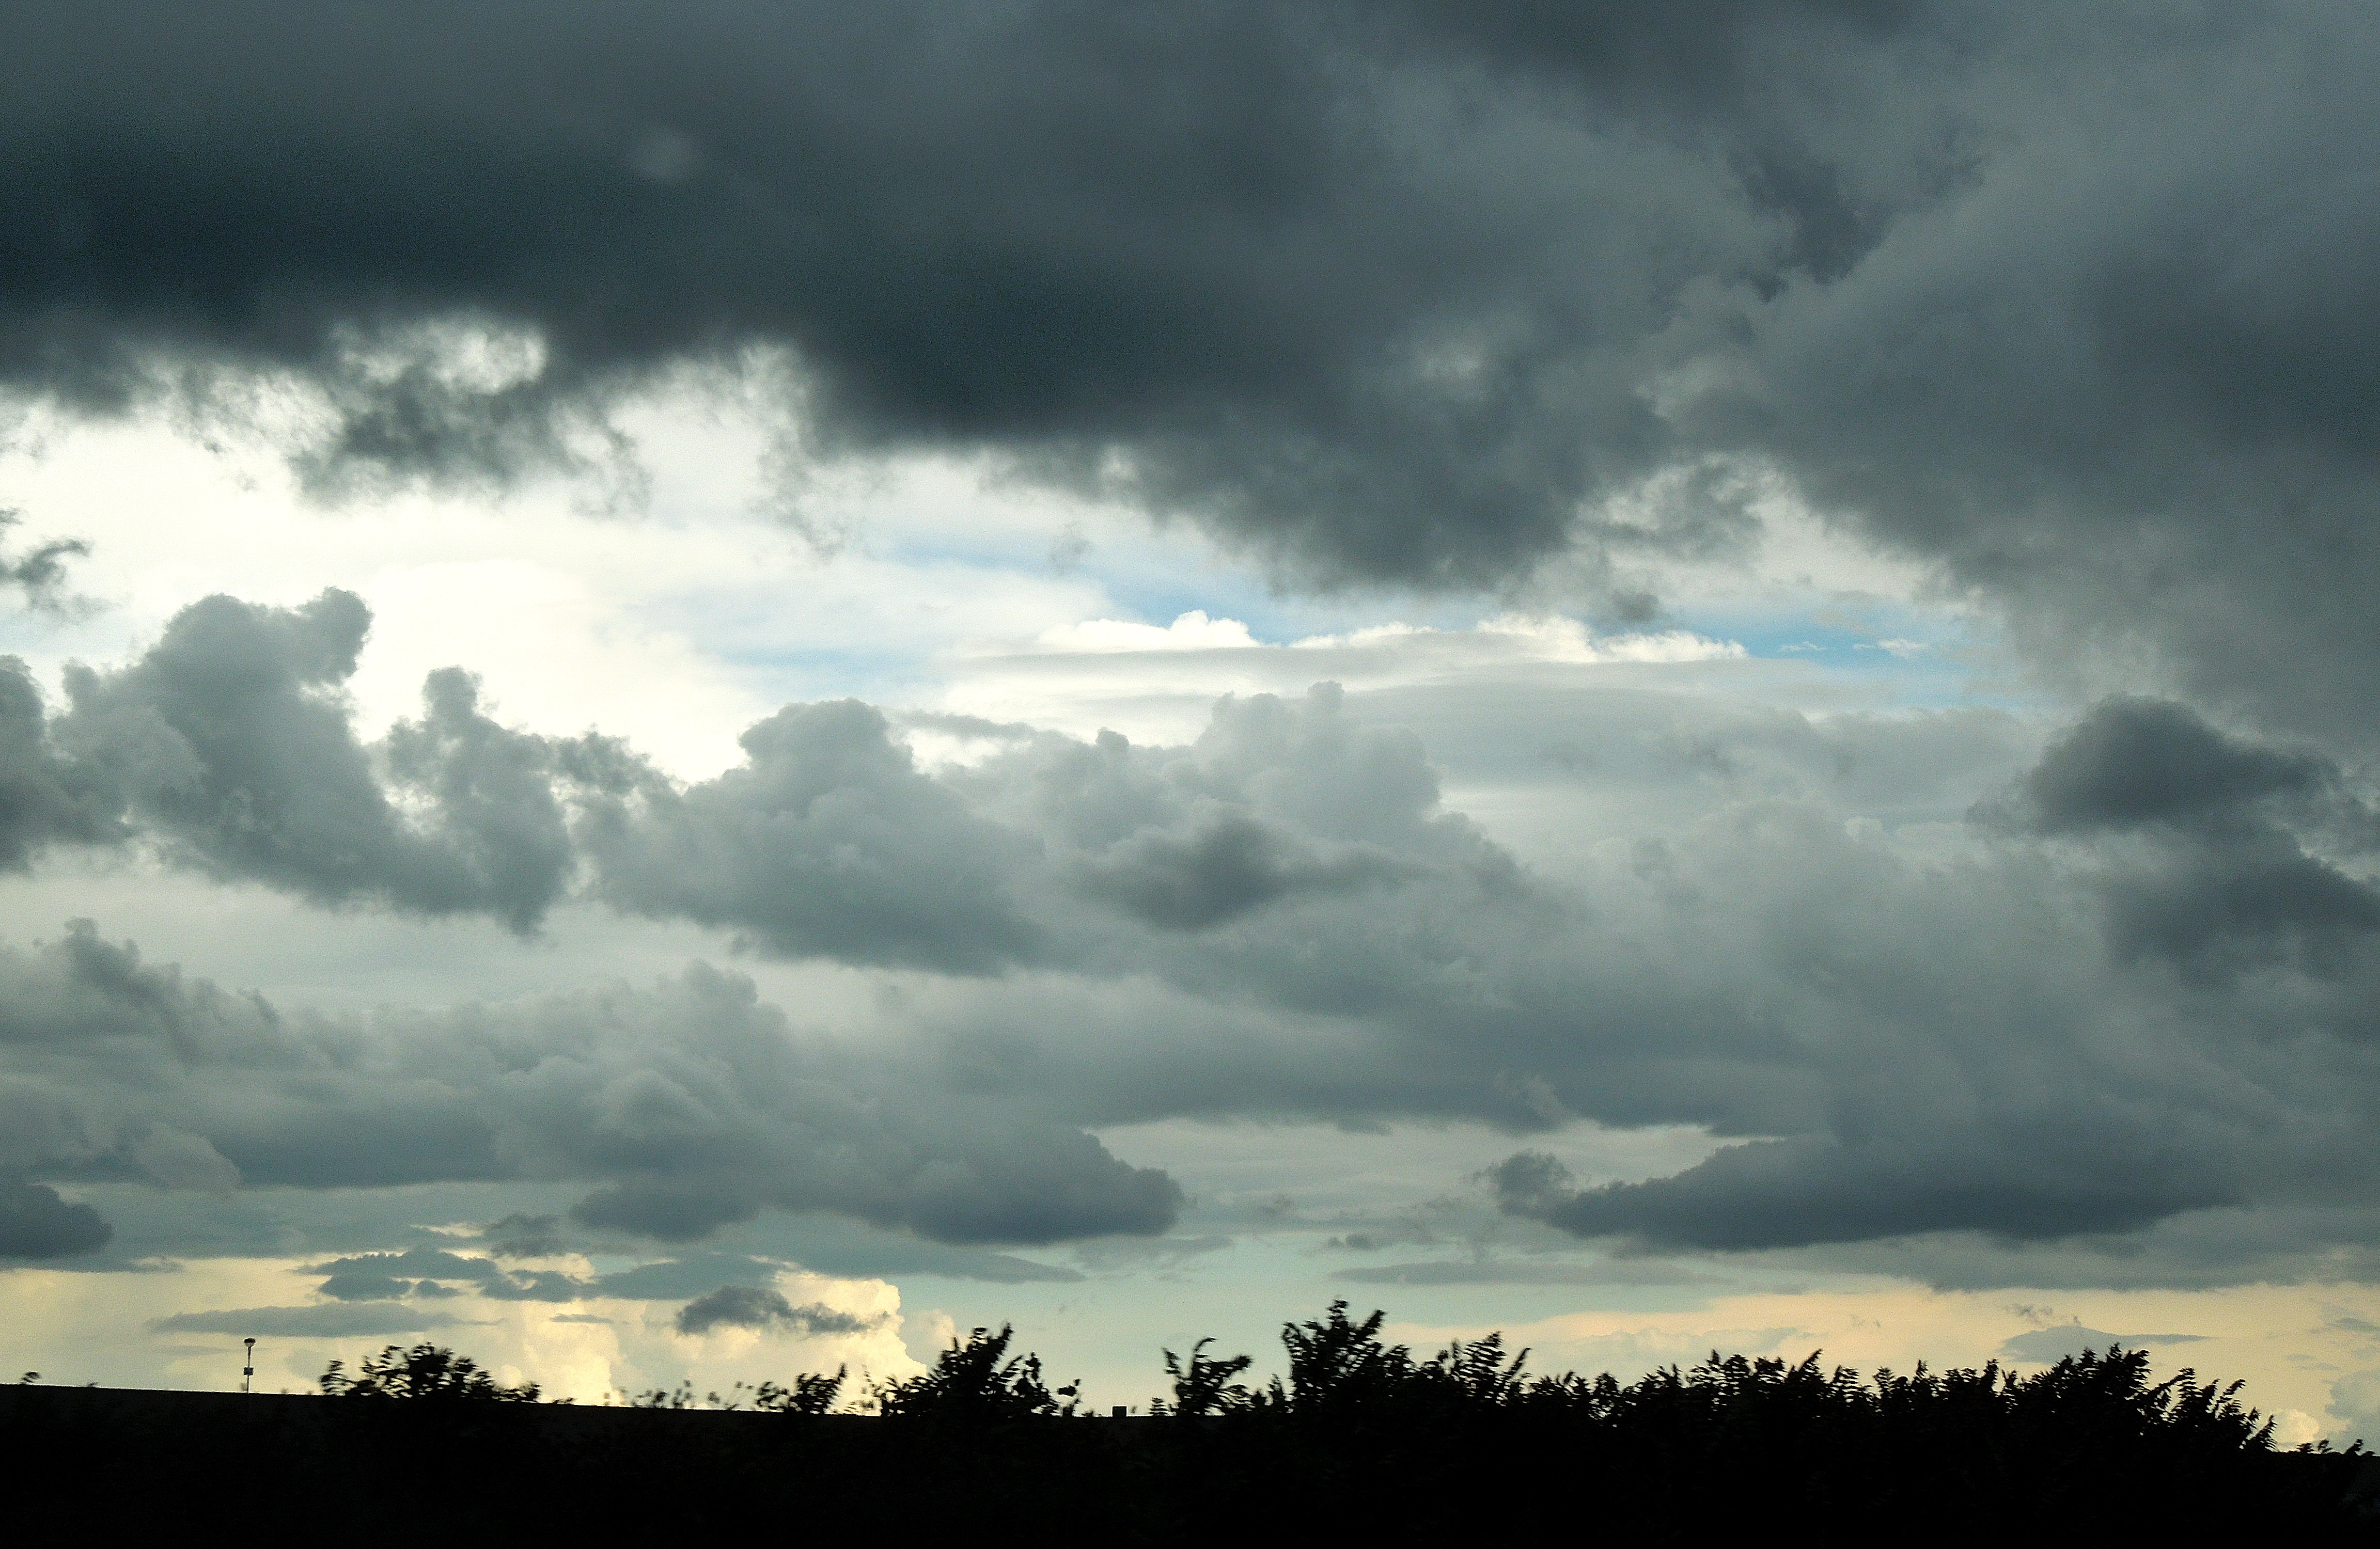 Storm Clouds Over the Shenandoah Valley 2012 | jthomasross